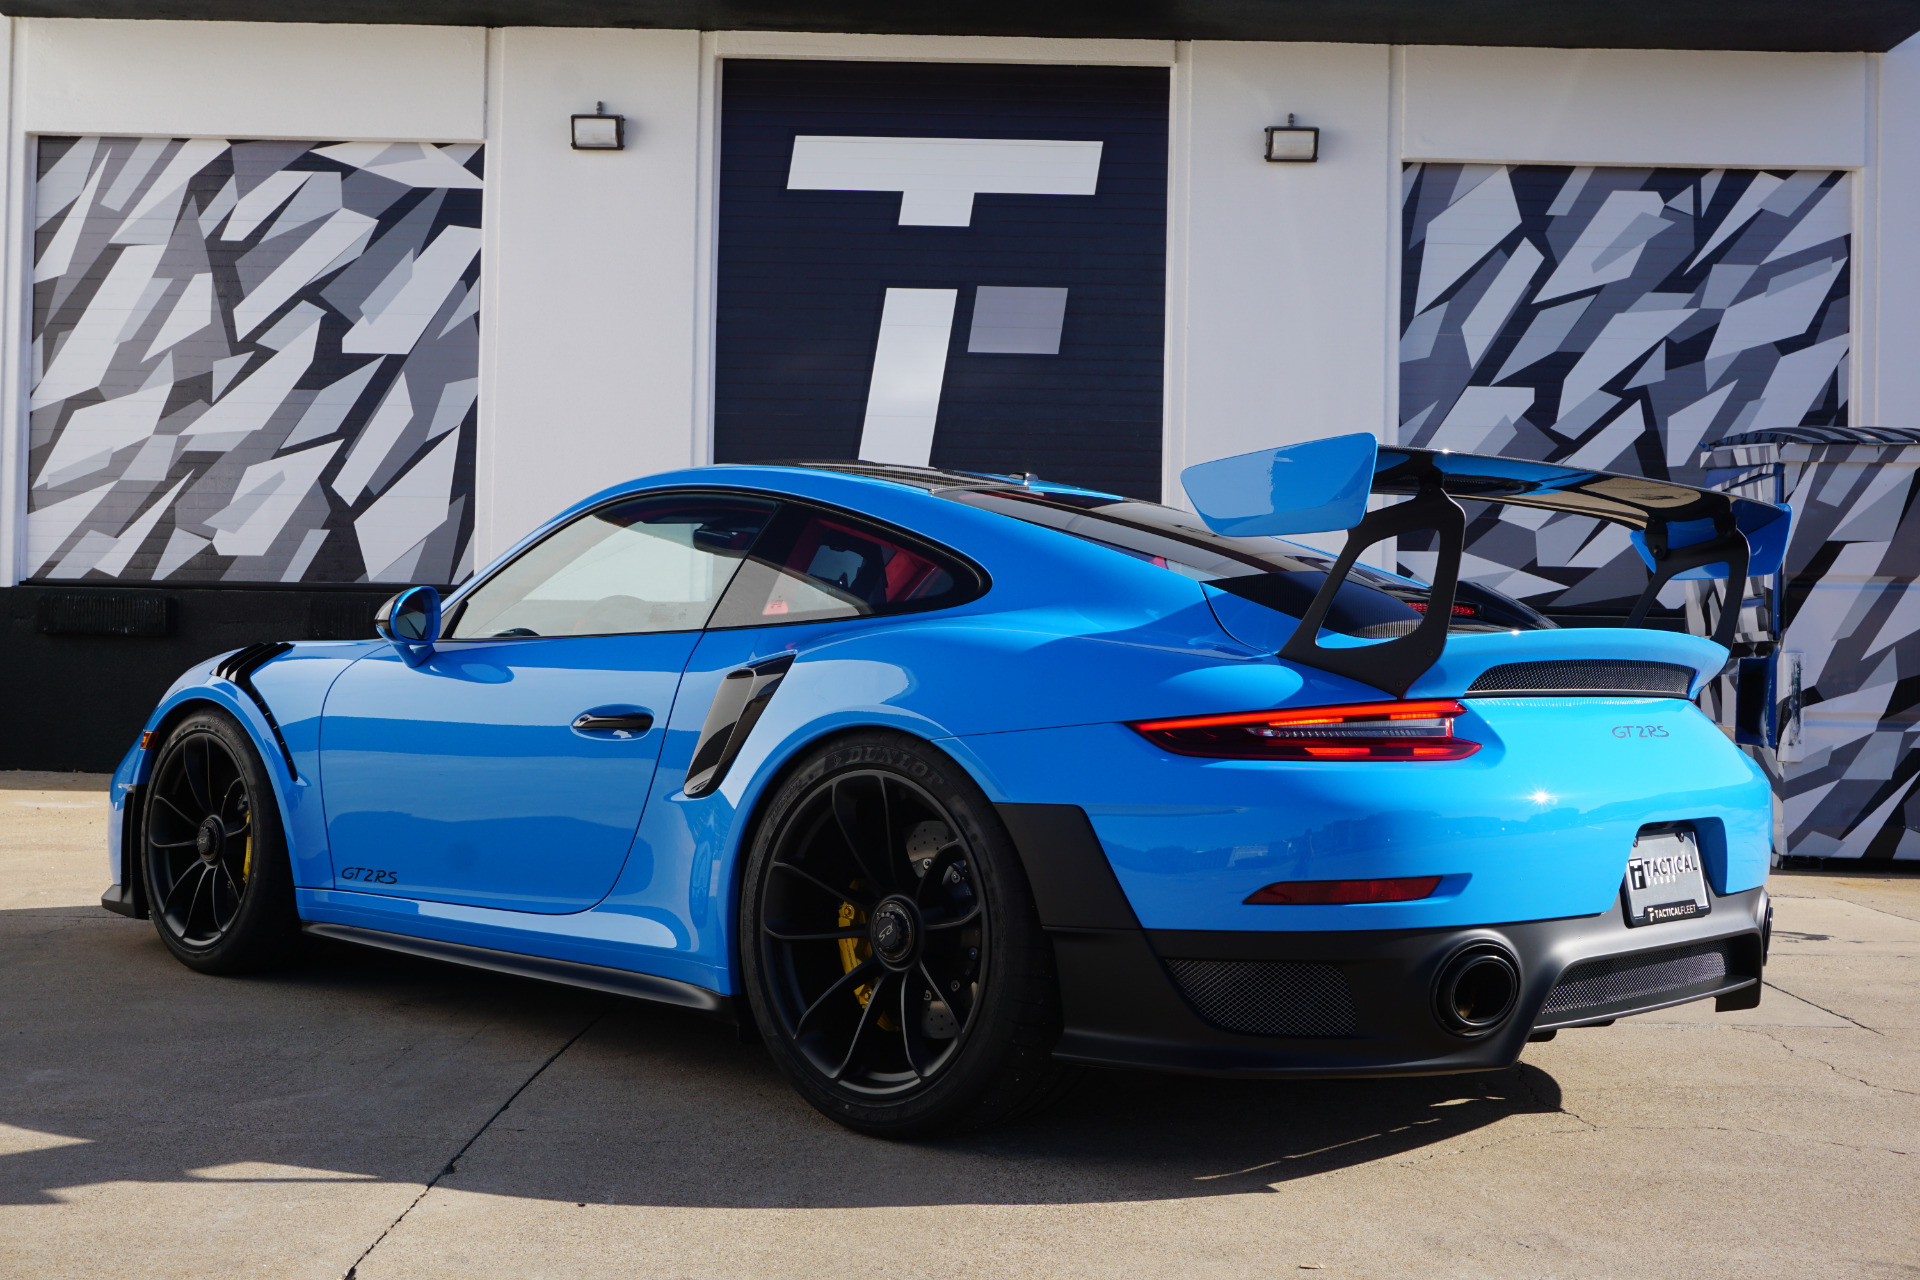 Used 2018 Porsche 911 Gt2 Rs For Sale 379 900 Tactical Fleet Stock Tf1237